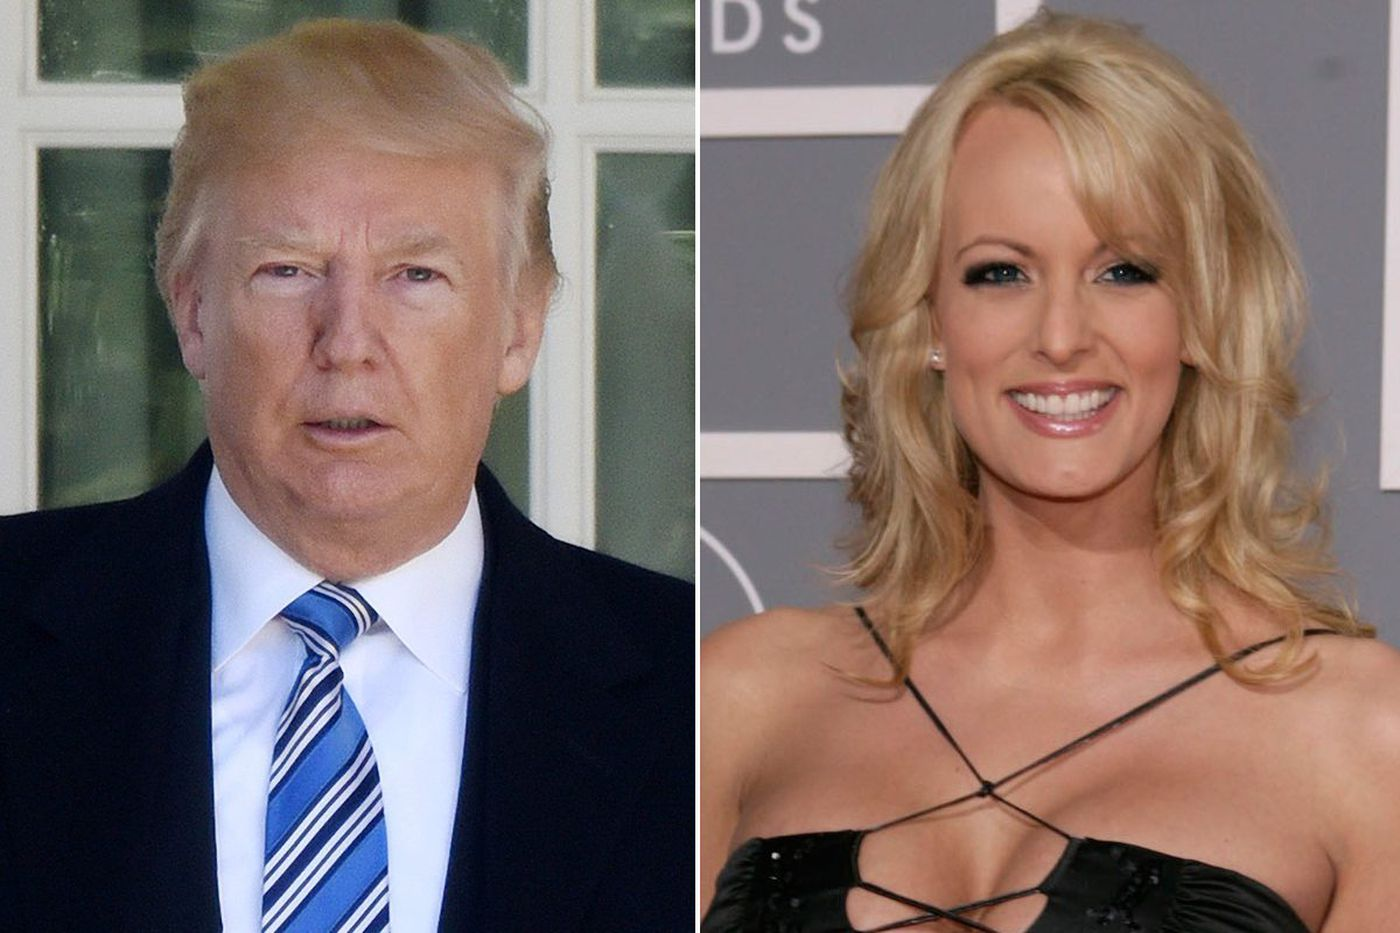 Smerconish: Trump faces 'real legal dilemma' over Stormy Daniels' lawsuit